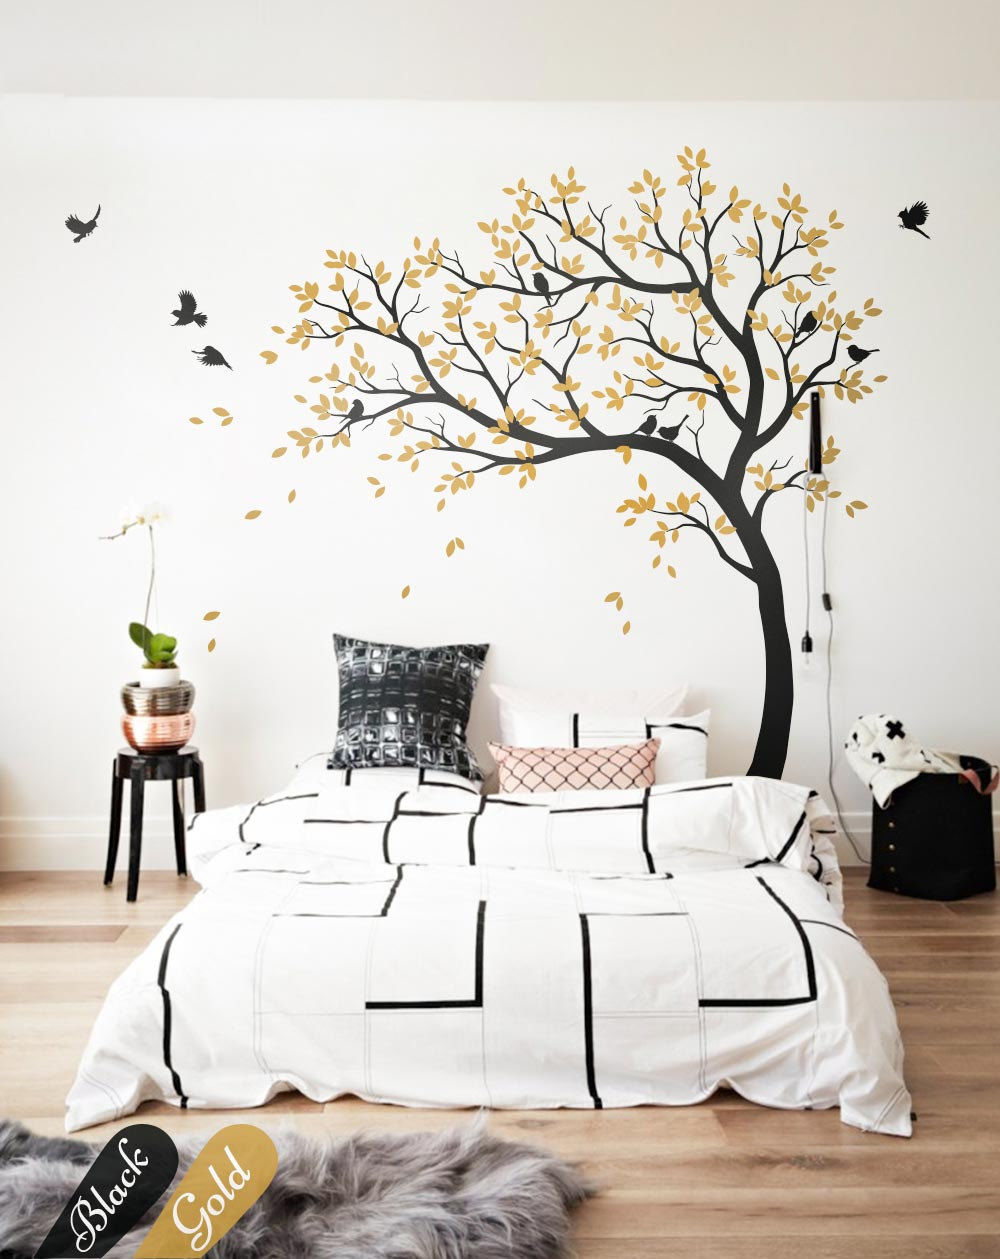 Large Black Nursery Wall Design With Cute Birds And Leaves Baby Room Decor Diy Removable Wallpaper Size 68 5 83 7inches In Stickers From Home Garden